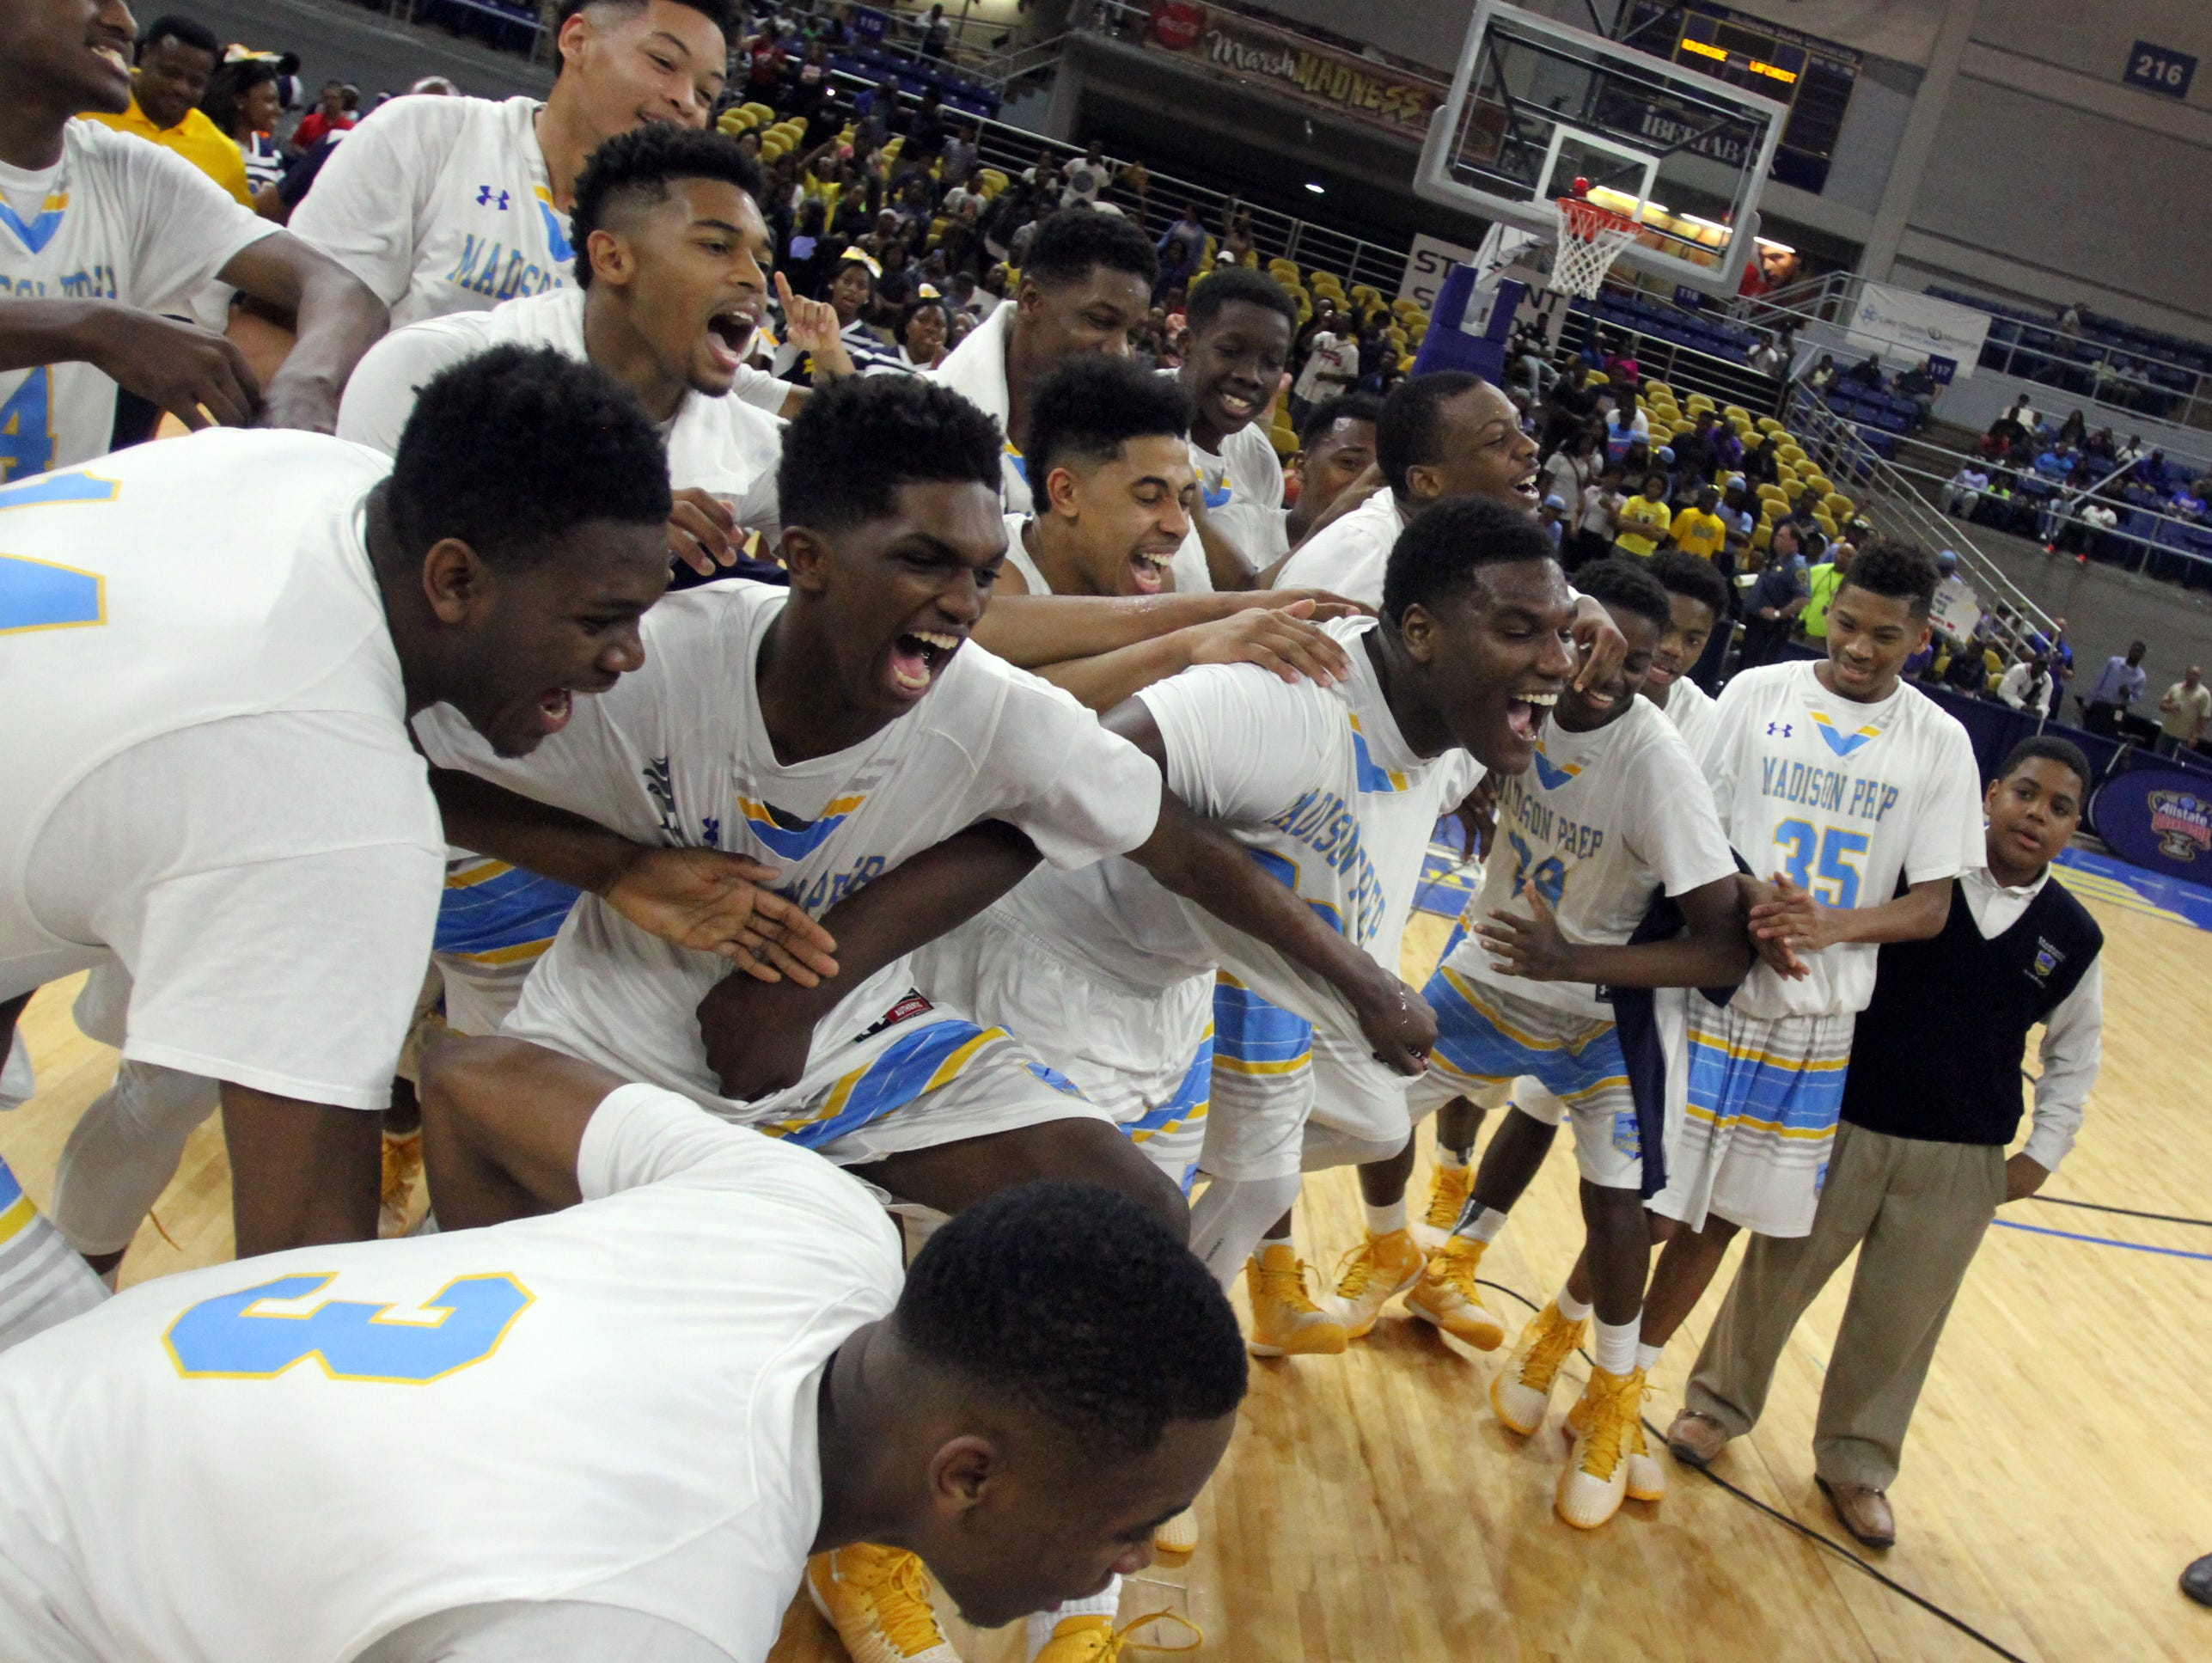 Madison Prep (Baton Rouge, Louisiana) won the 2016 Louisiana Class 2A State boys basketball championship.